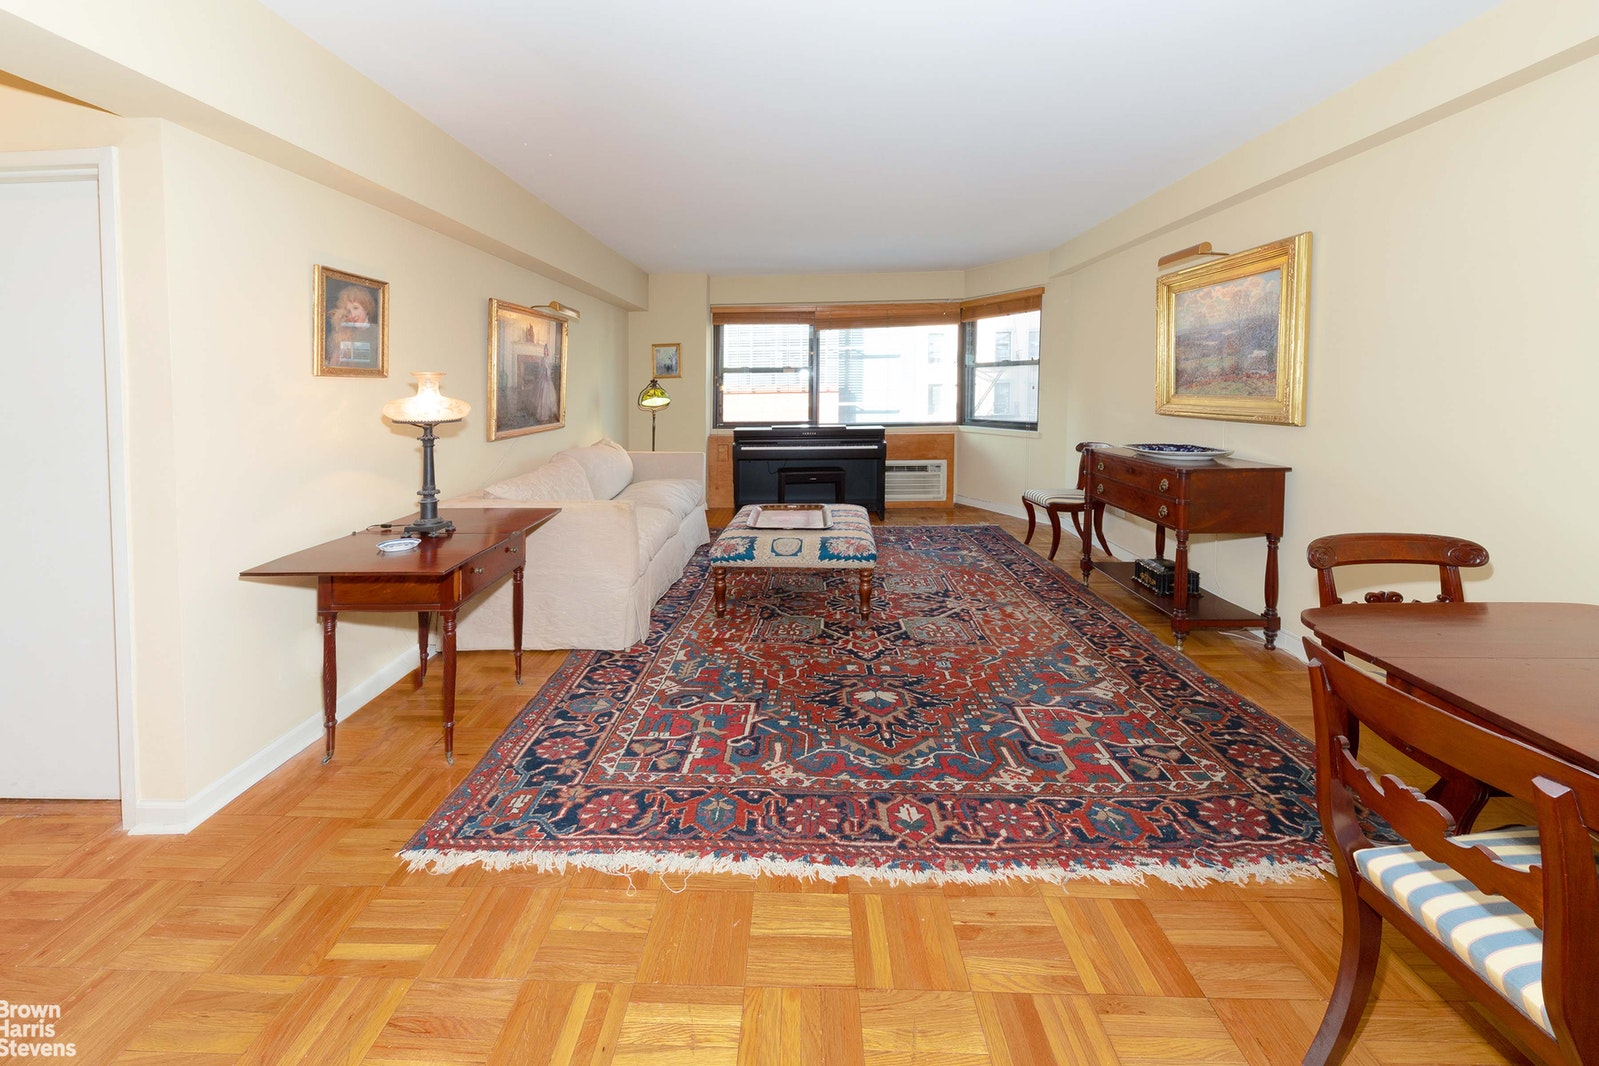 305 East 72nd Street 5f, Upper East Side, NYC, 10021, $649,000, Property For Sale, Halstead Real Estate, Photo 1